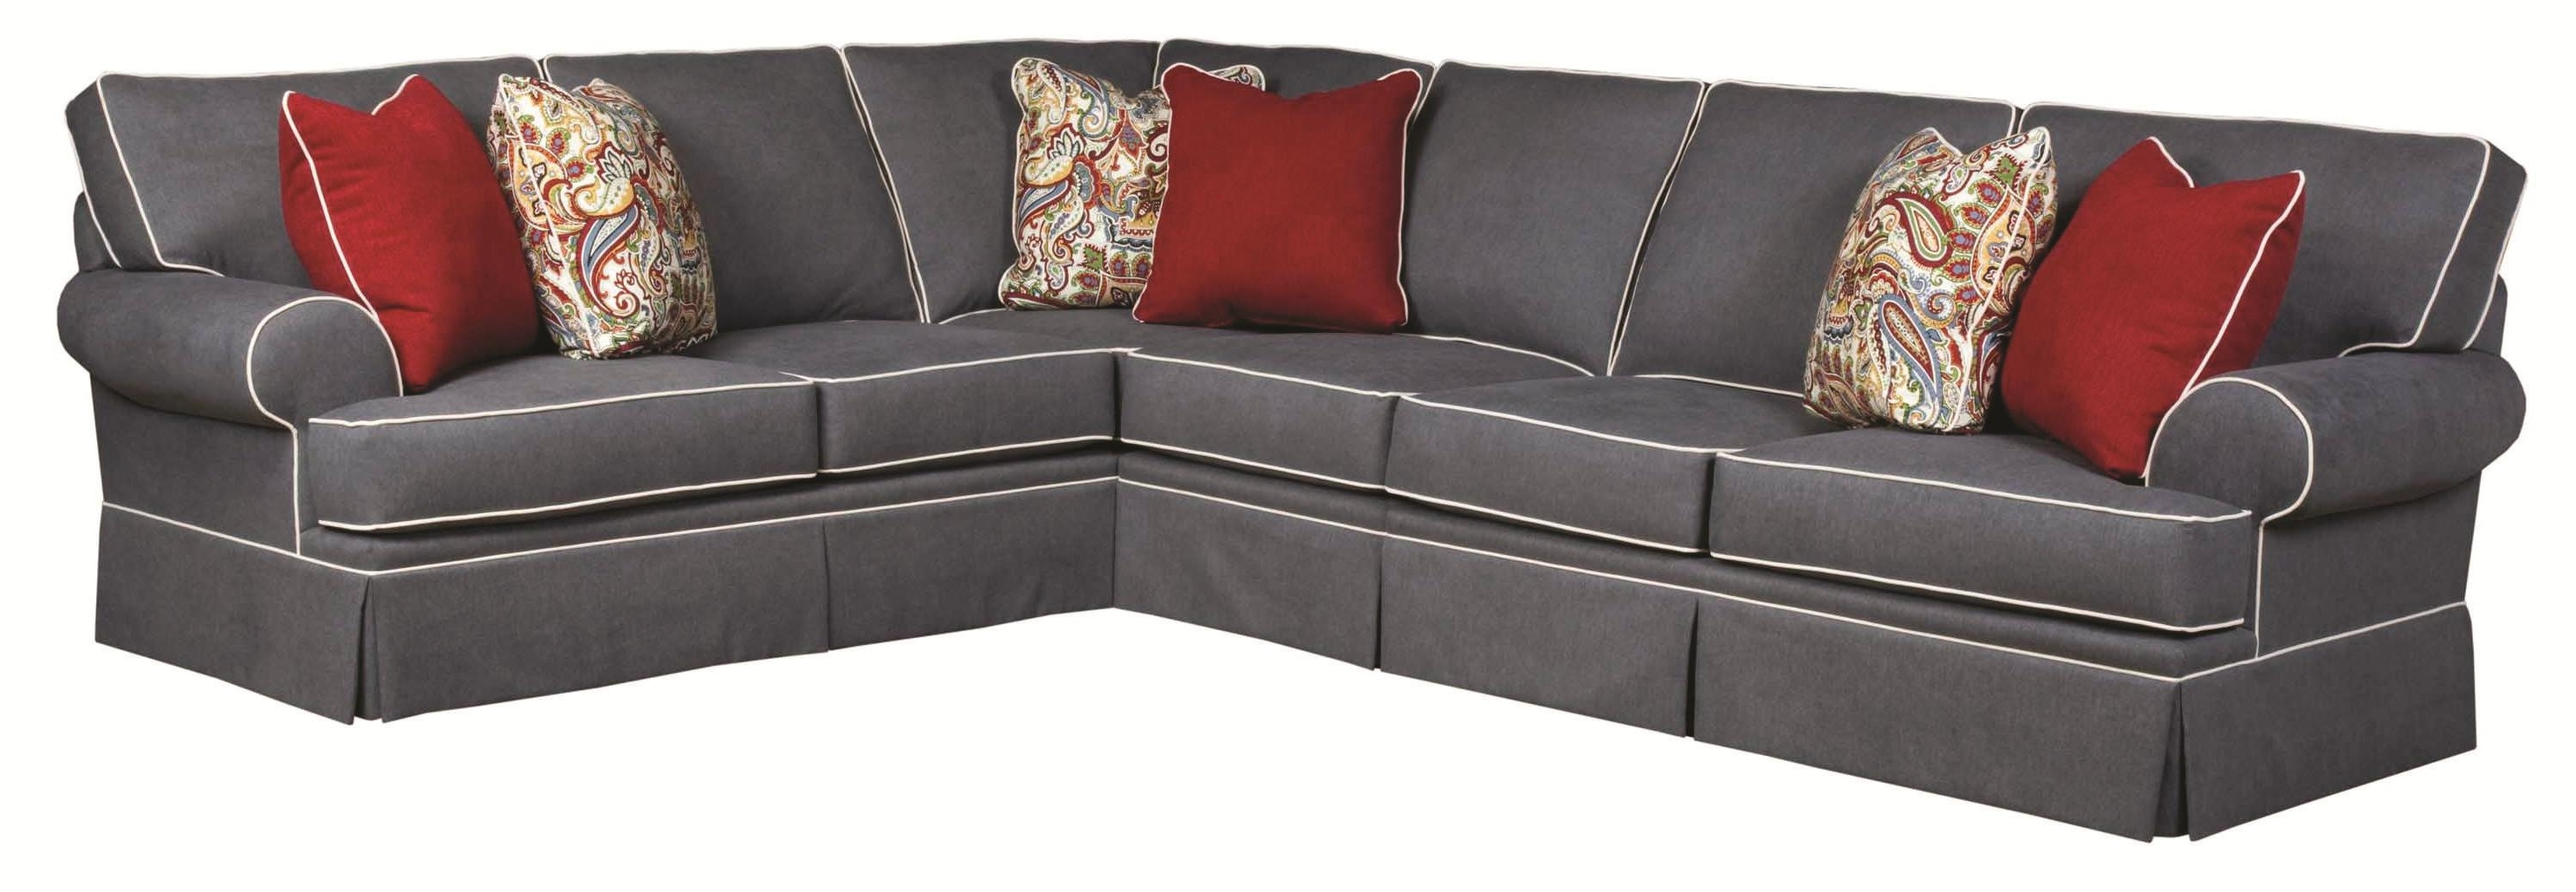 Broyhill Furniture Emily Traditional 3 Piece Sectional Sofa With Inside 2018 Harrisburg Pa Sectional Sofas (View 14 of 15)